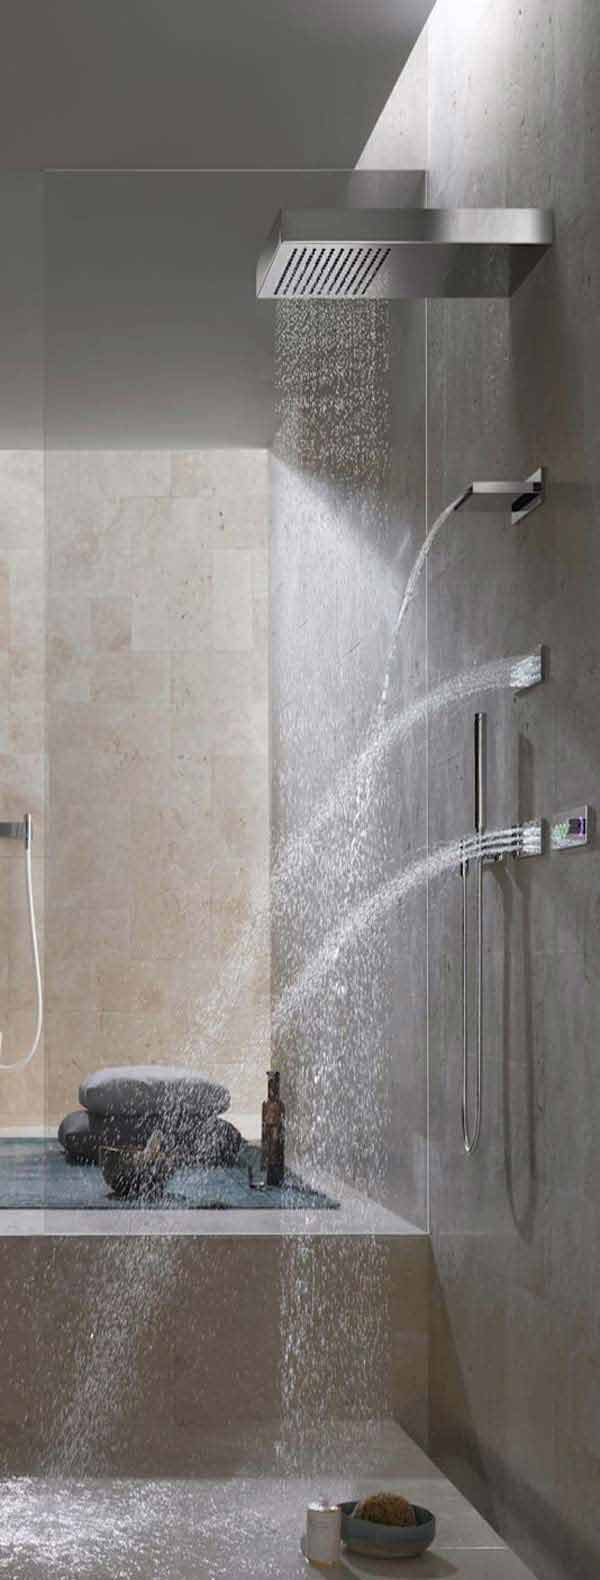 Rain-Showers-Bathroom-ideas-woohome-26